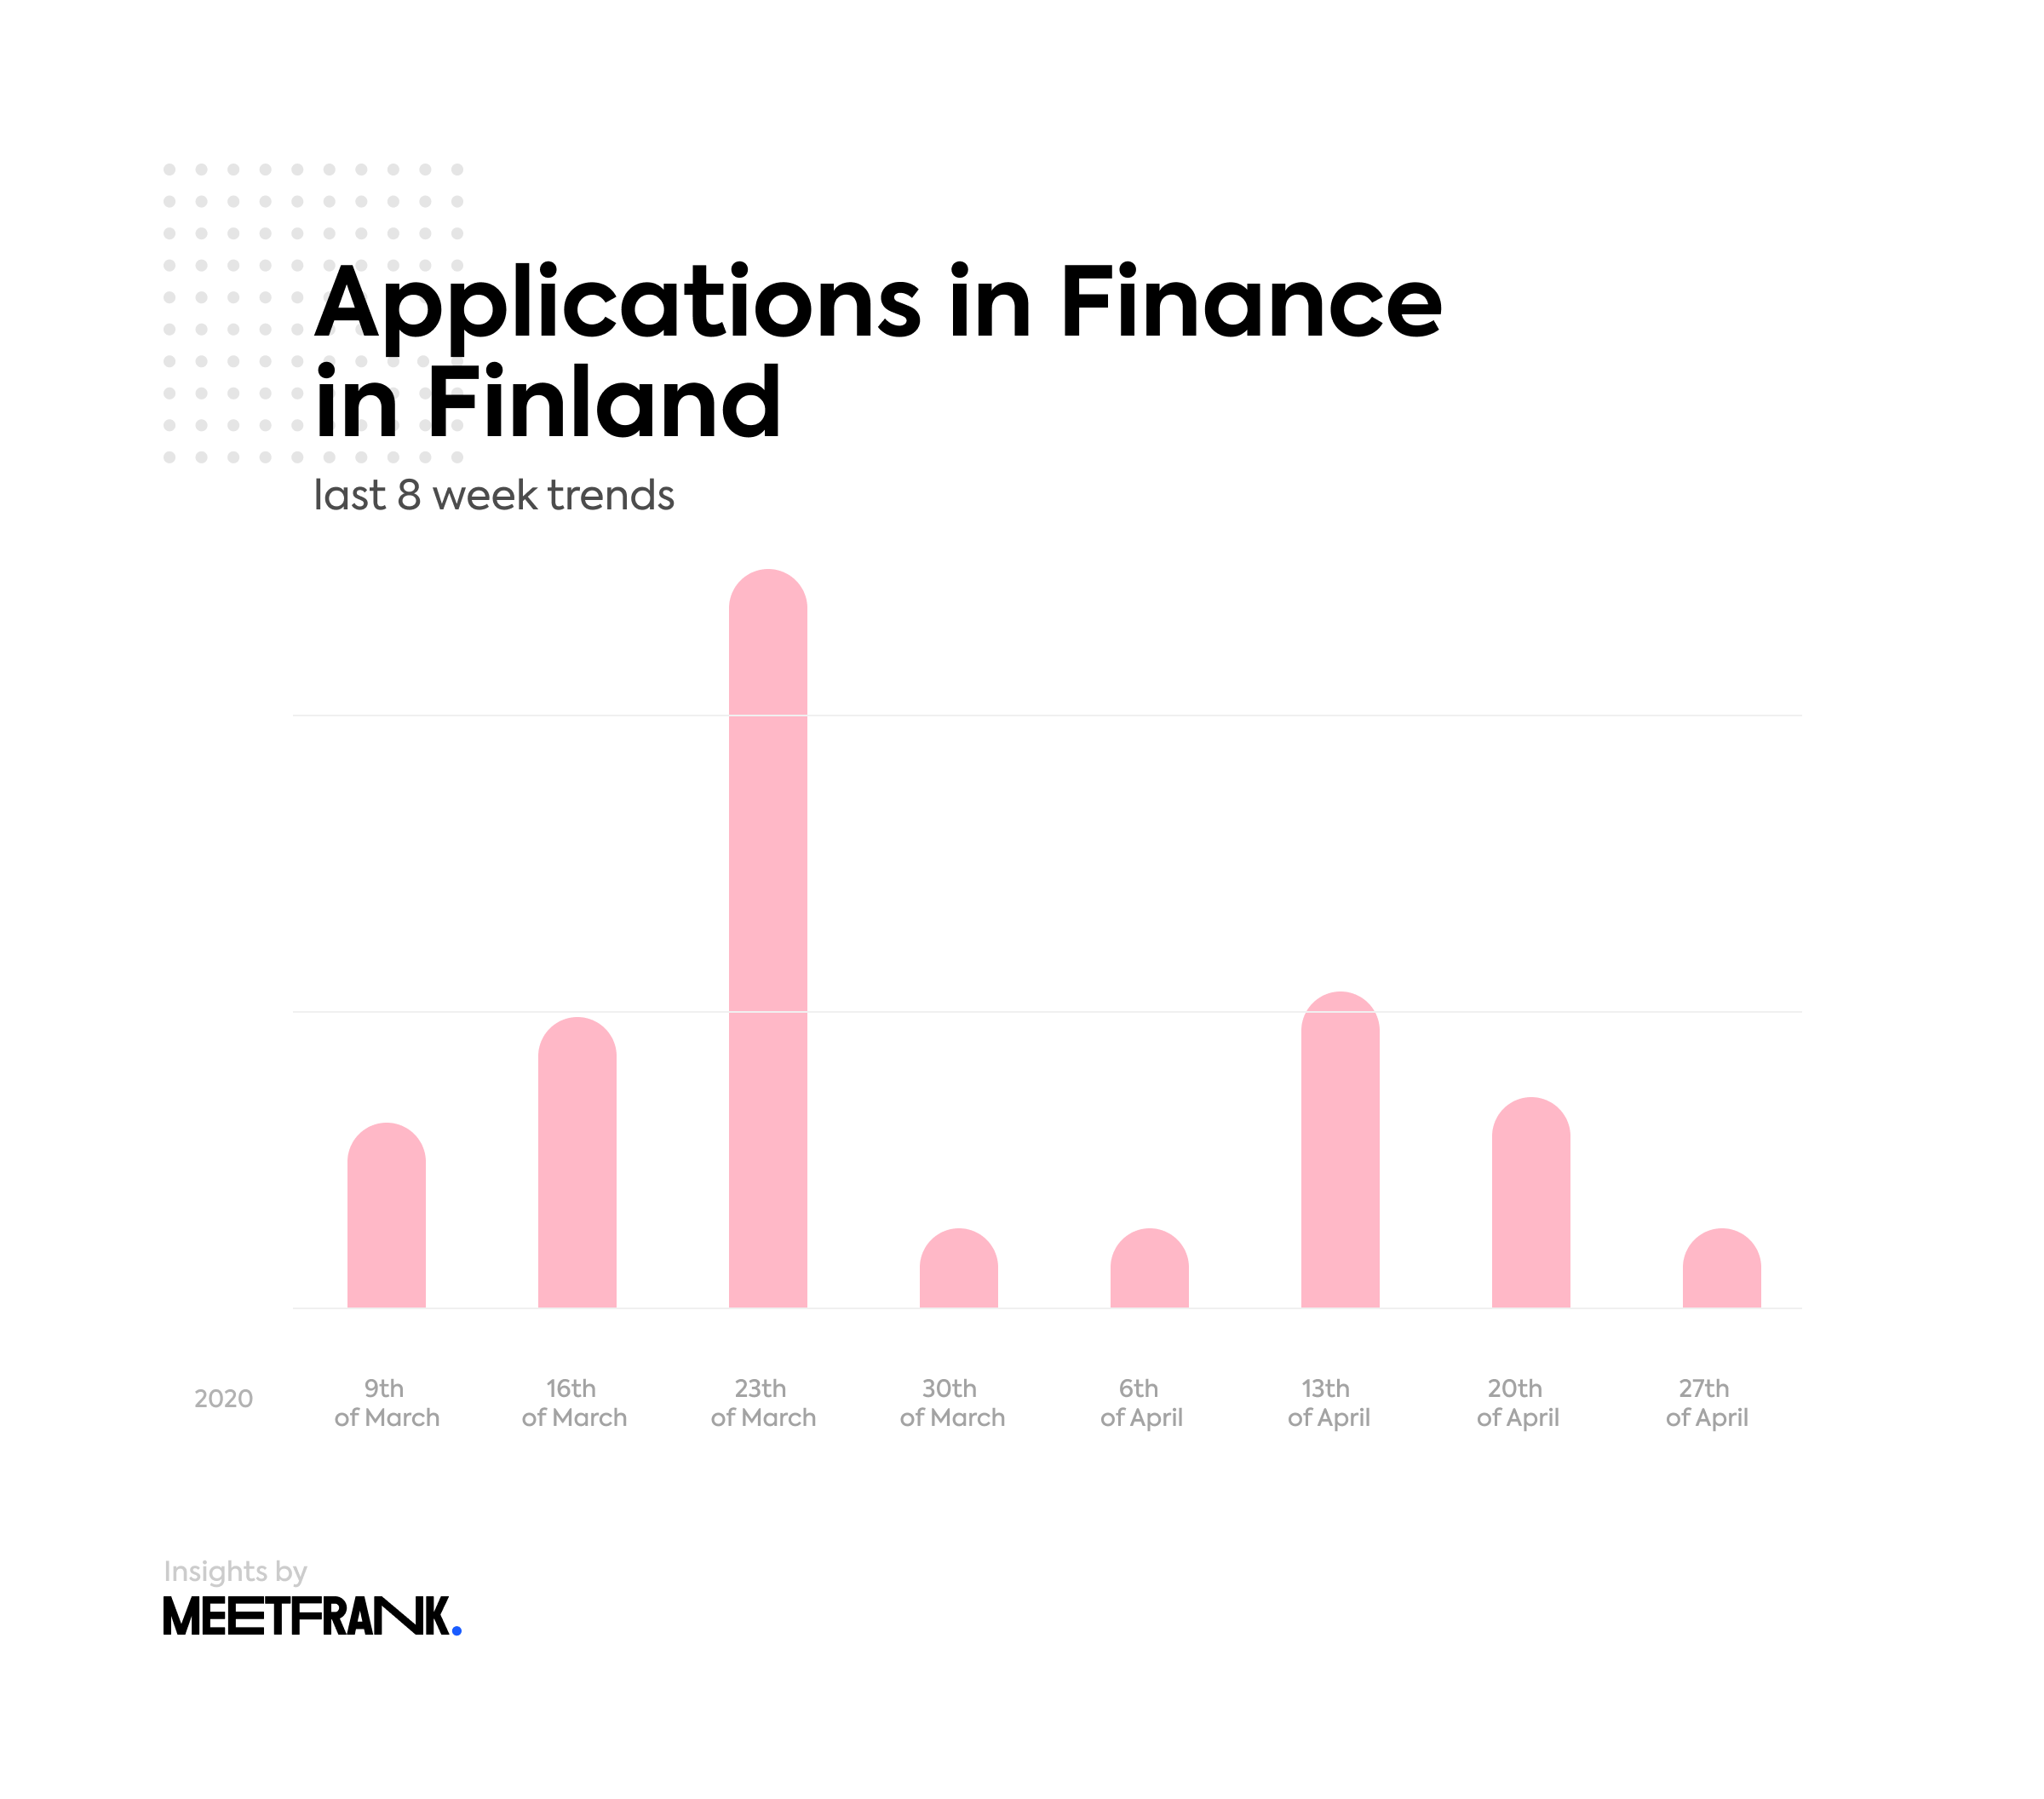 Finance job Applications in Finland